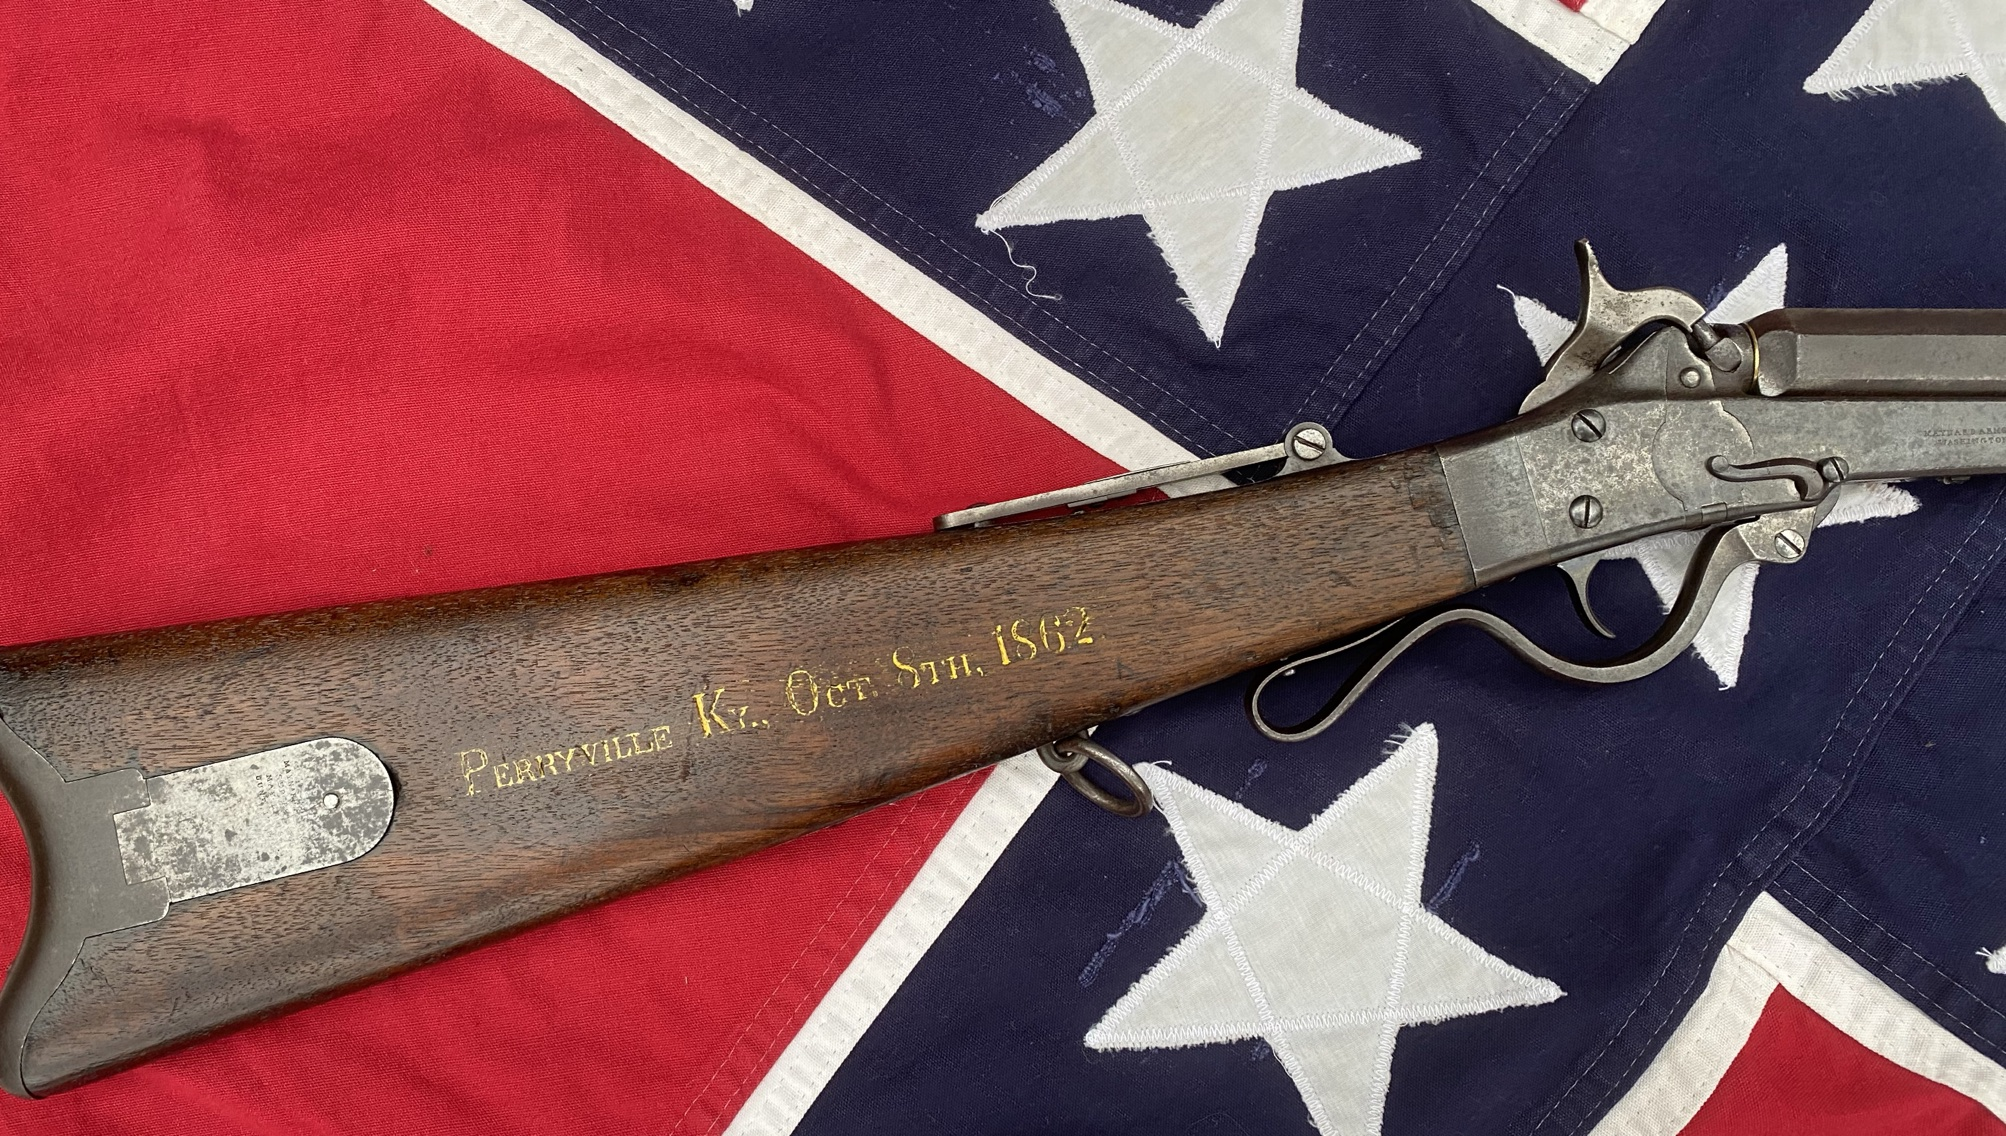 Maynard Carbine, War Trophy